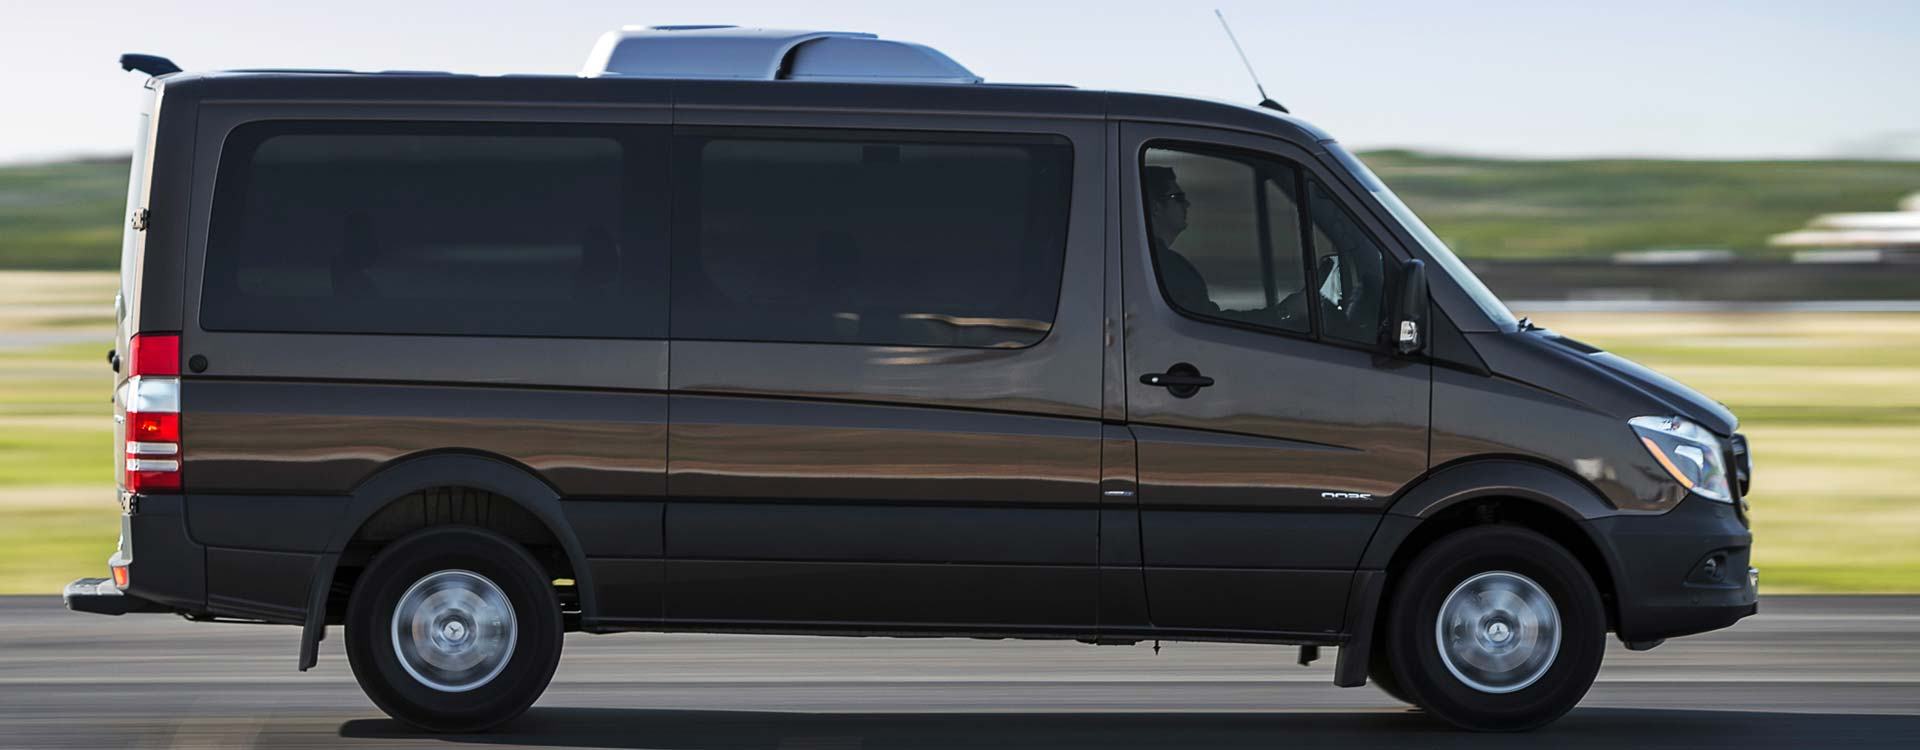 Mercedes Sprinter Van Hire Luxury Car Rental New Zealand